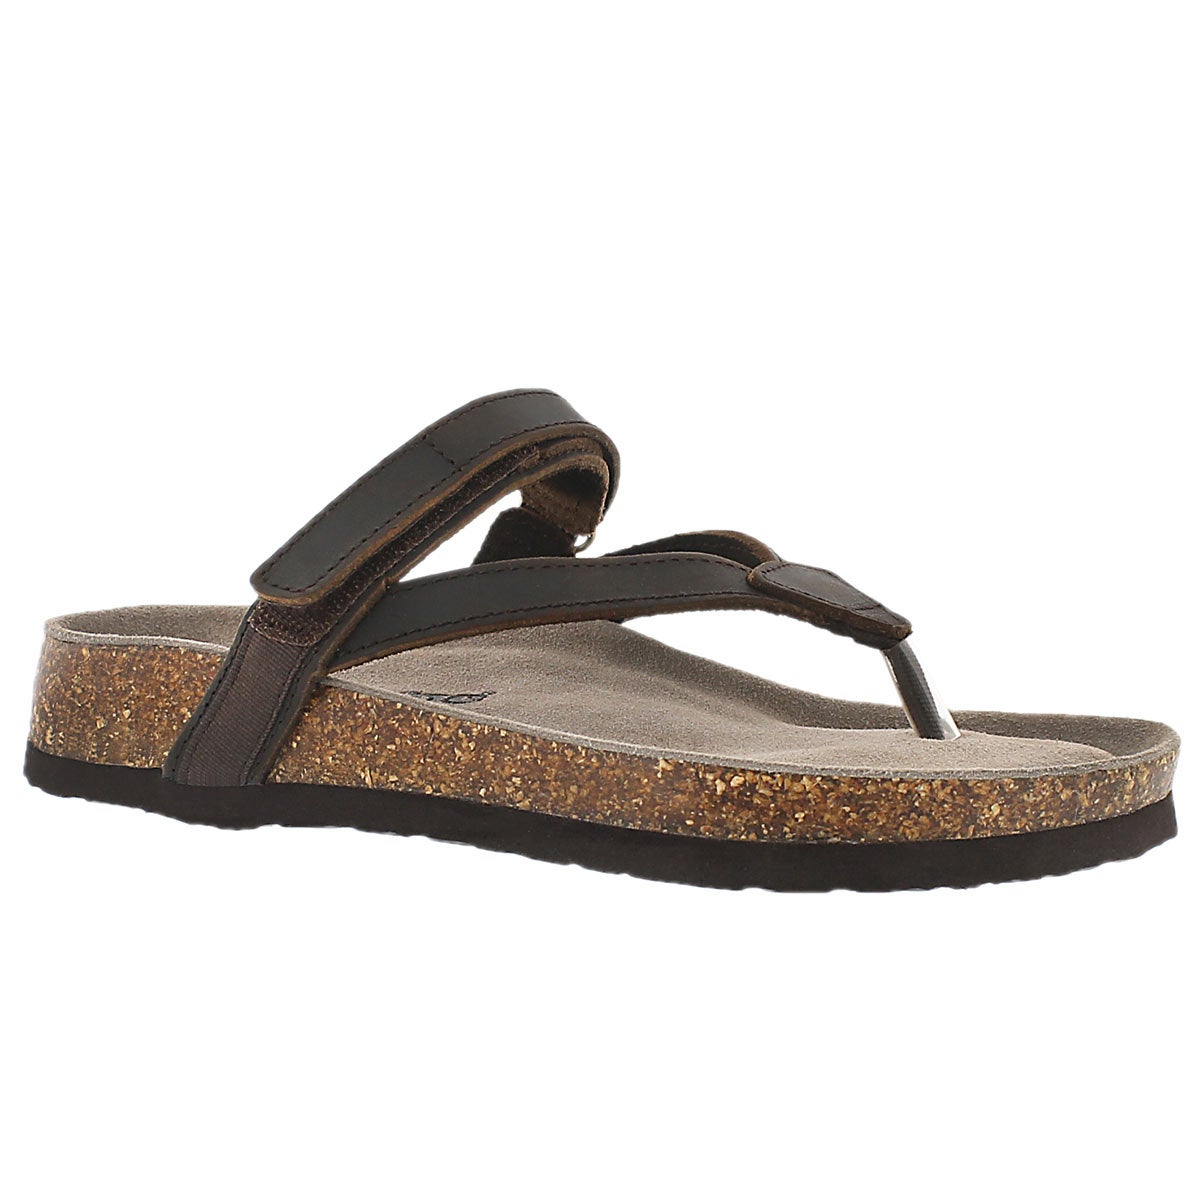 Women's AISHA crazy brown memory foam sandals